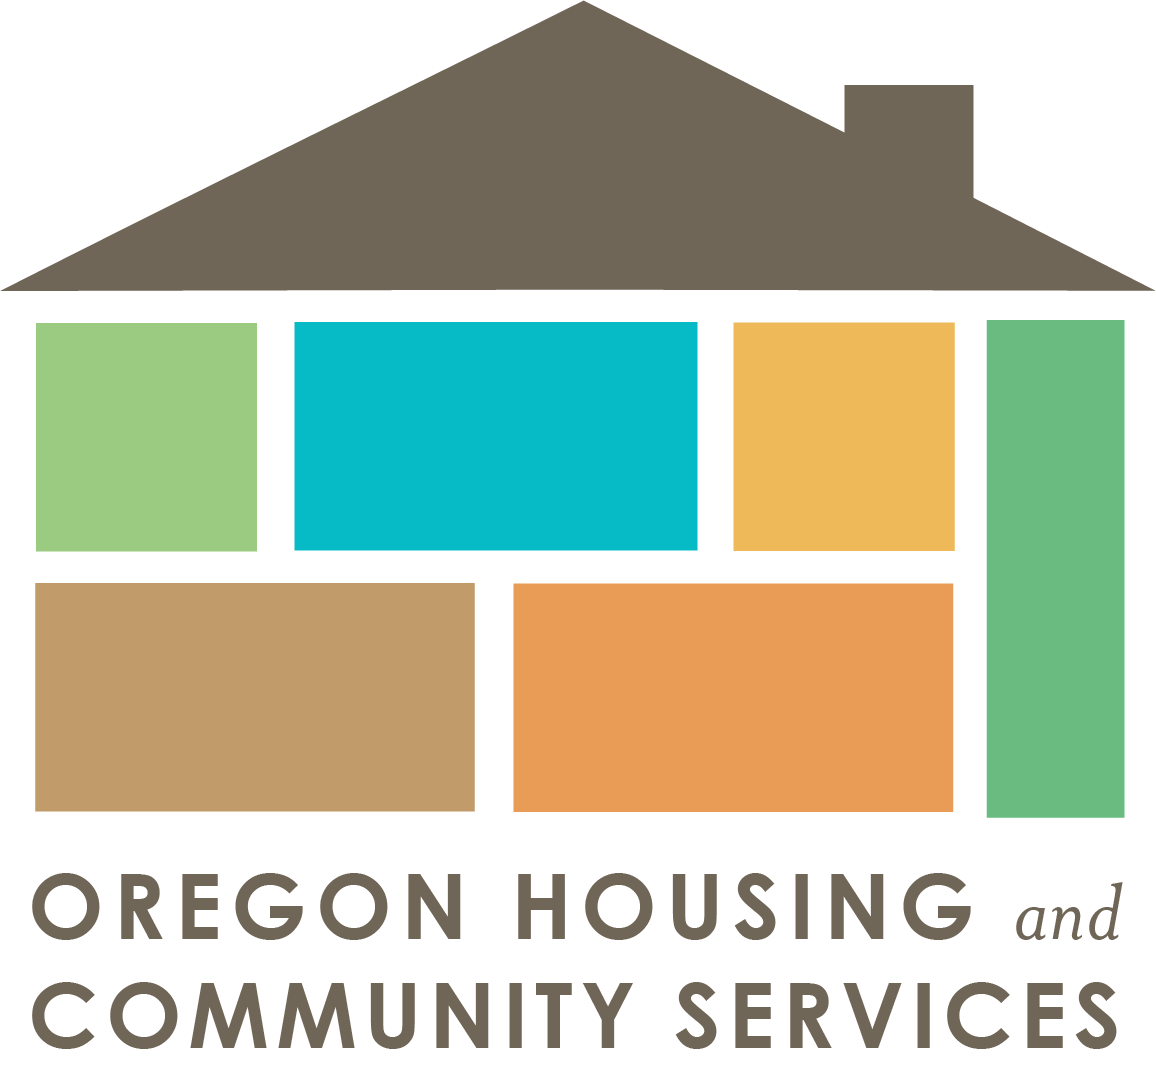 Oregon Housing and Community Services